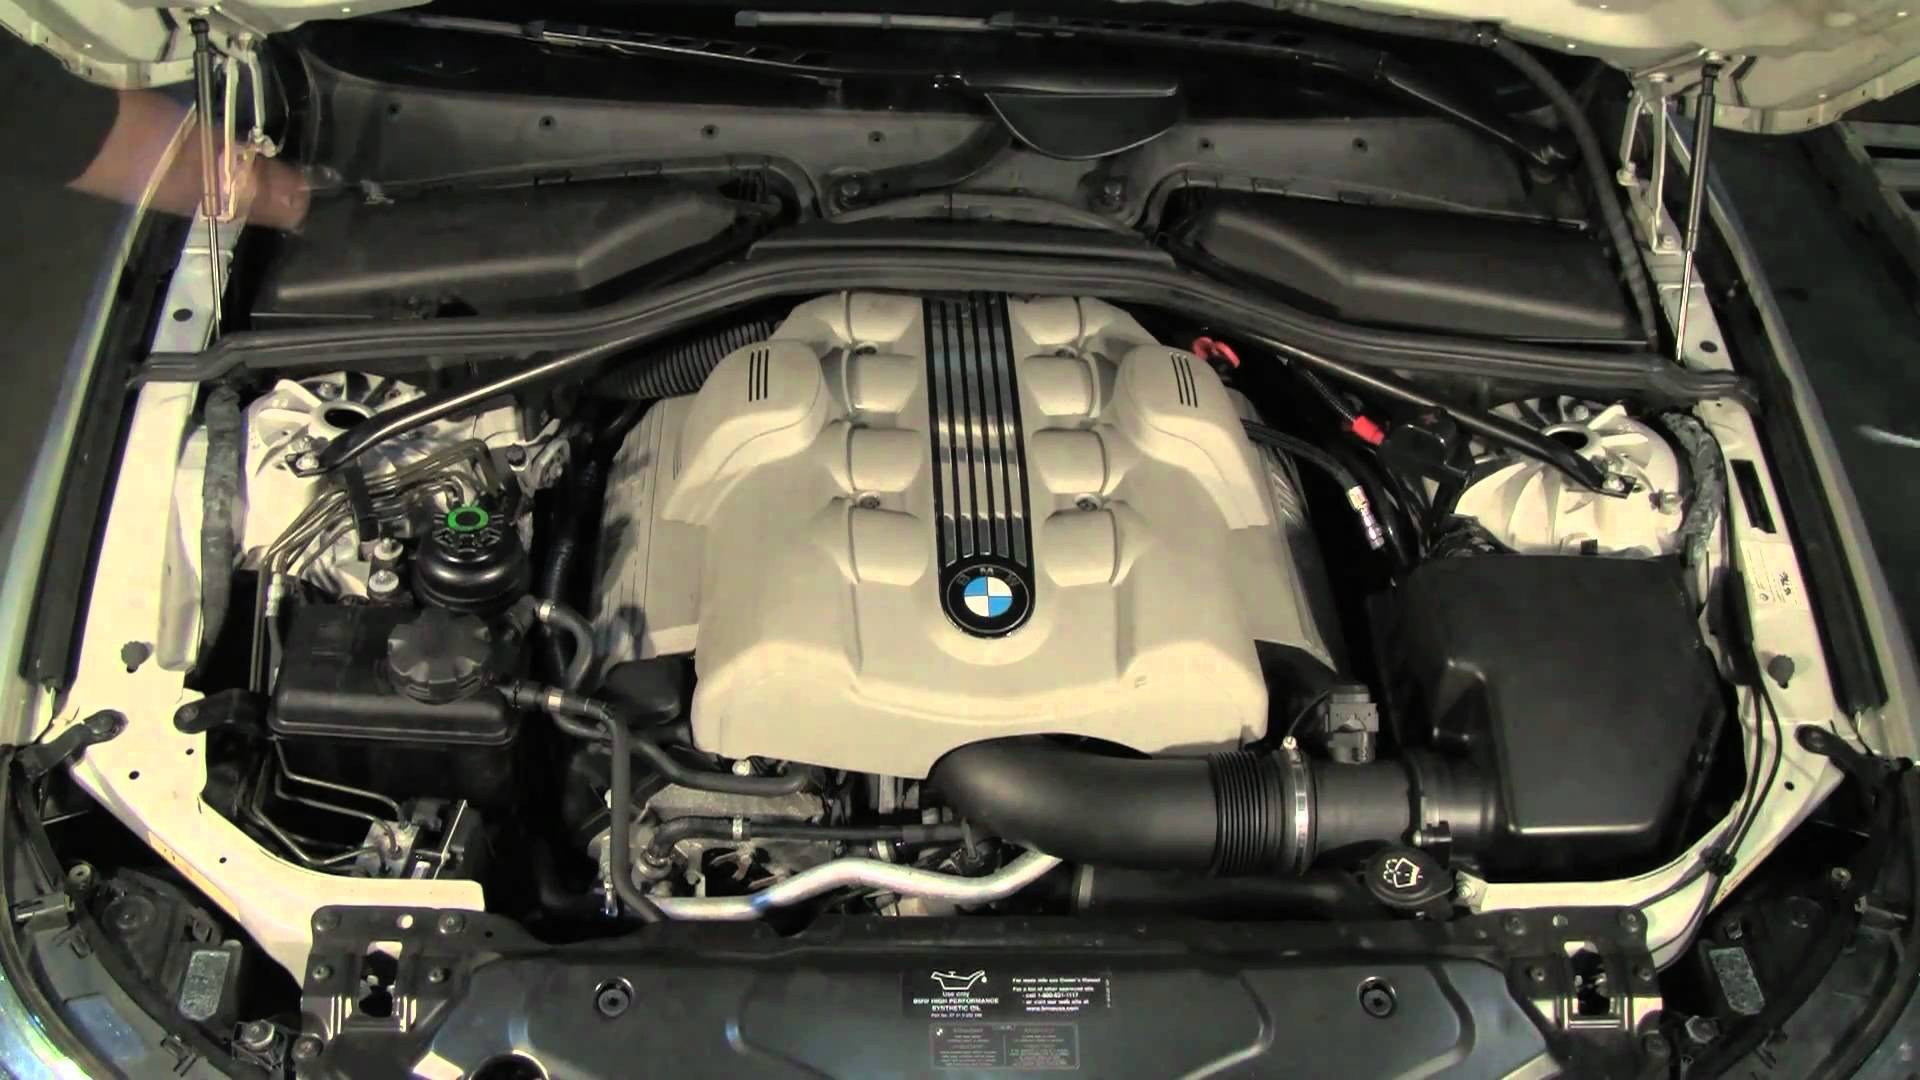 Bmw 528i Engine Diagram Under the Hood A Bmw 5 Series 04 Thru 10 Of Bmw 528i Engine Diagram